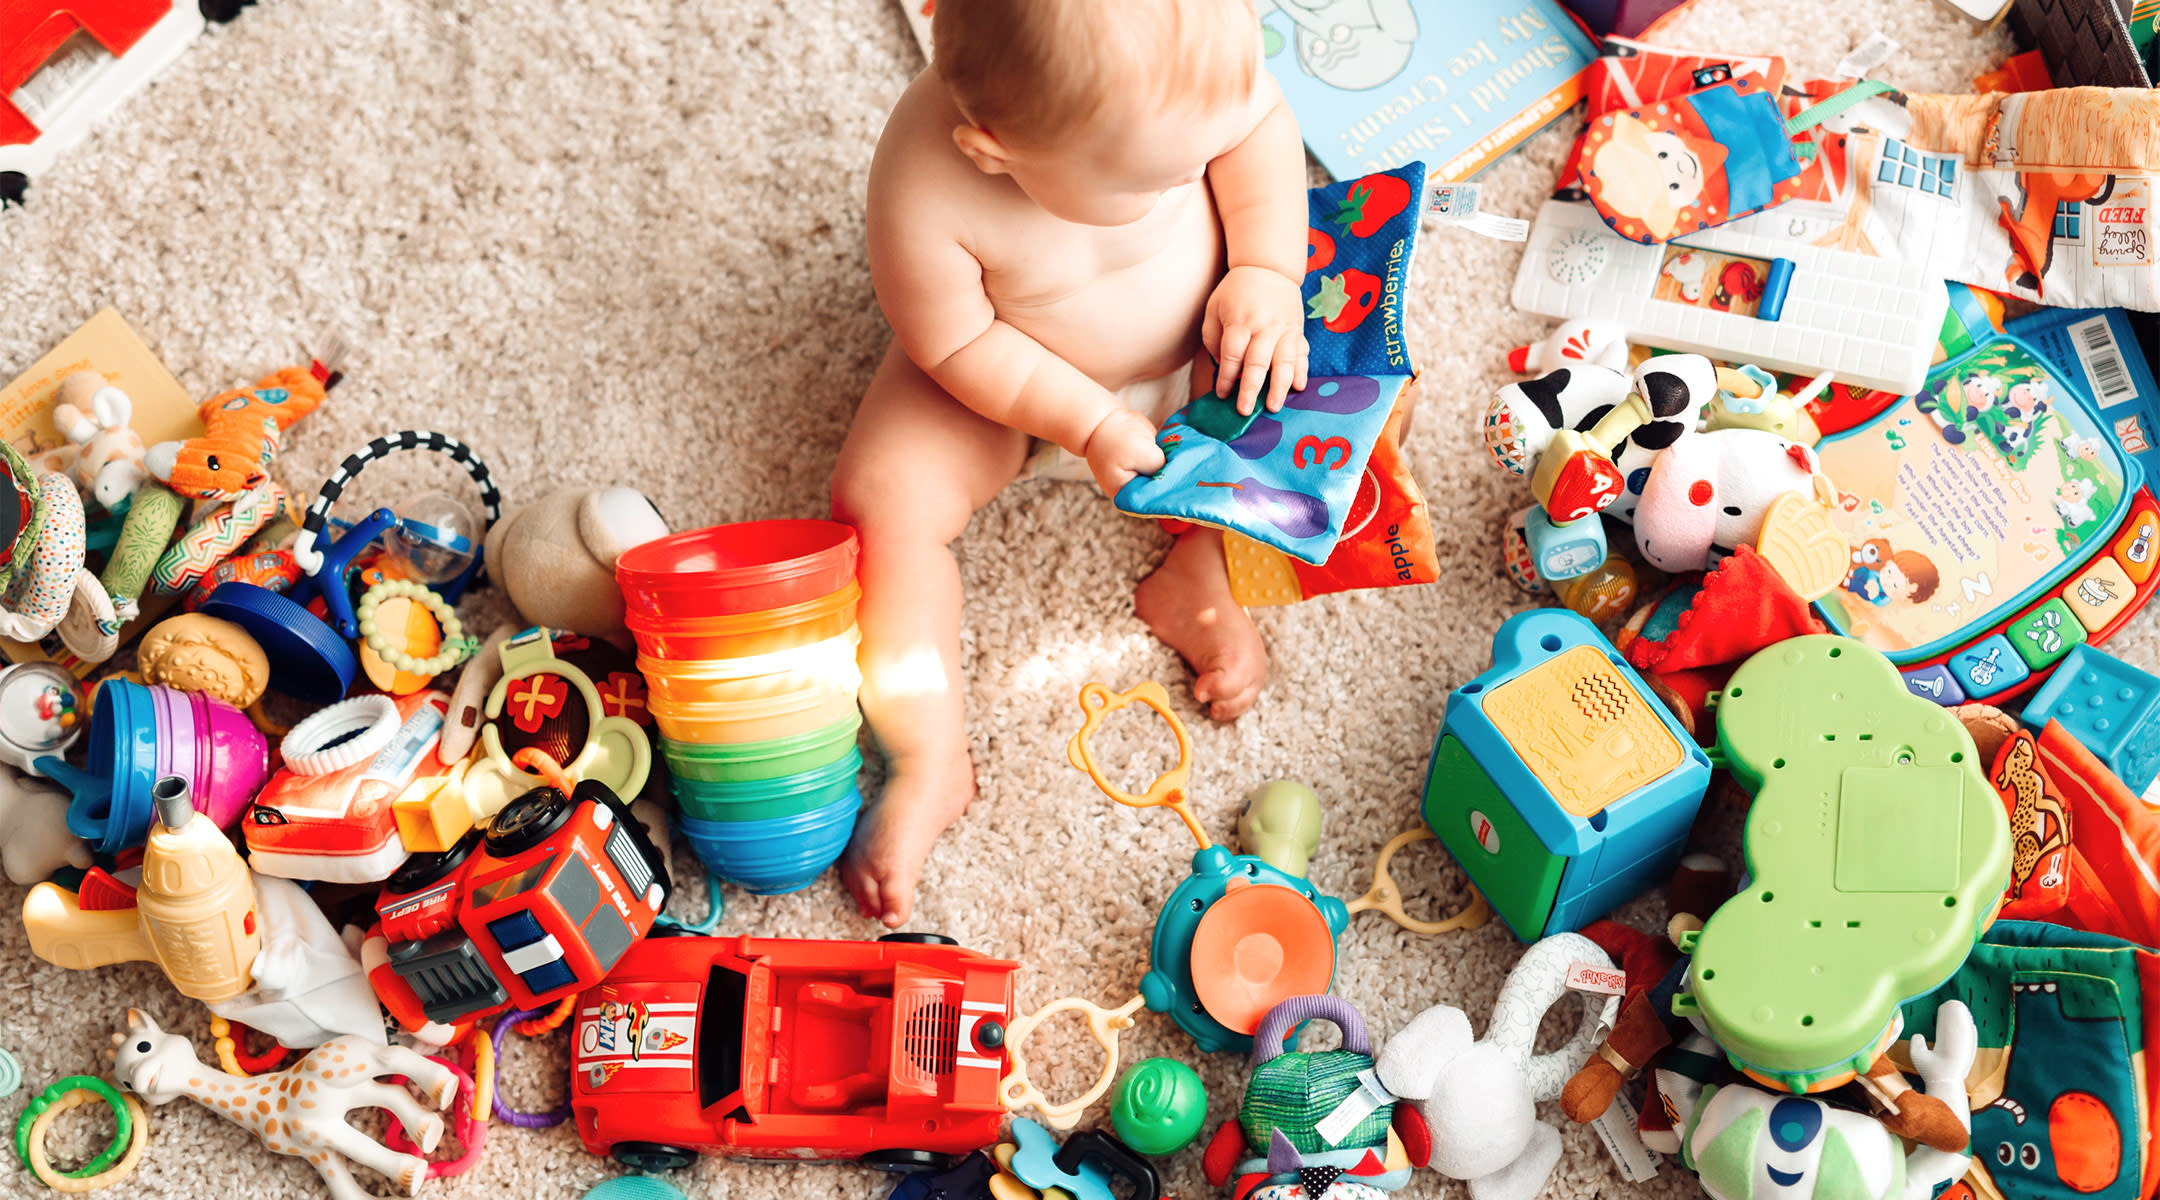 baby sitting on the floor with a bunch of toys